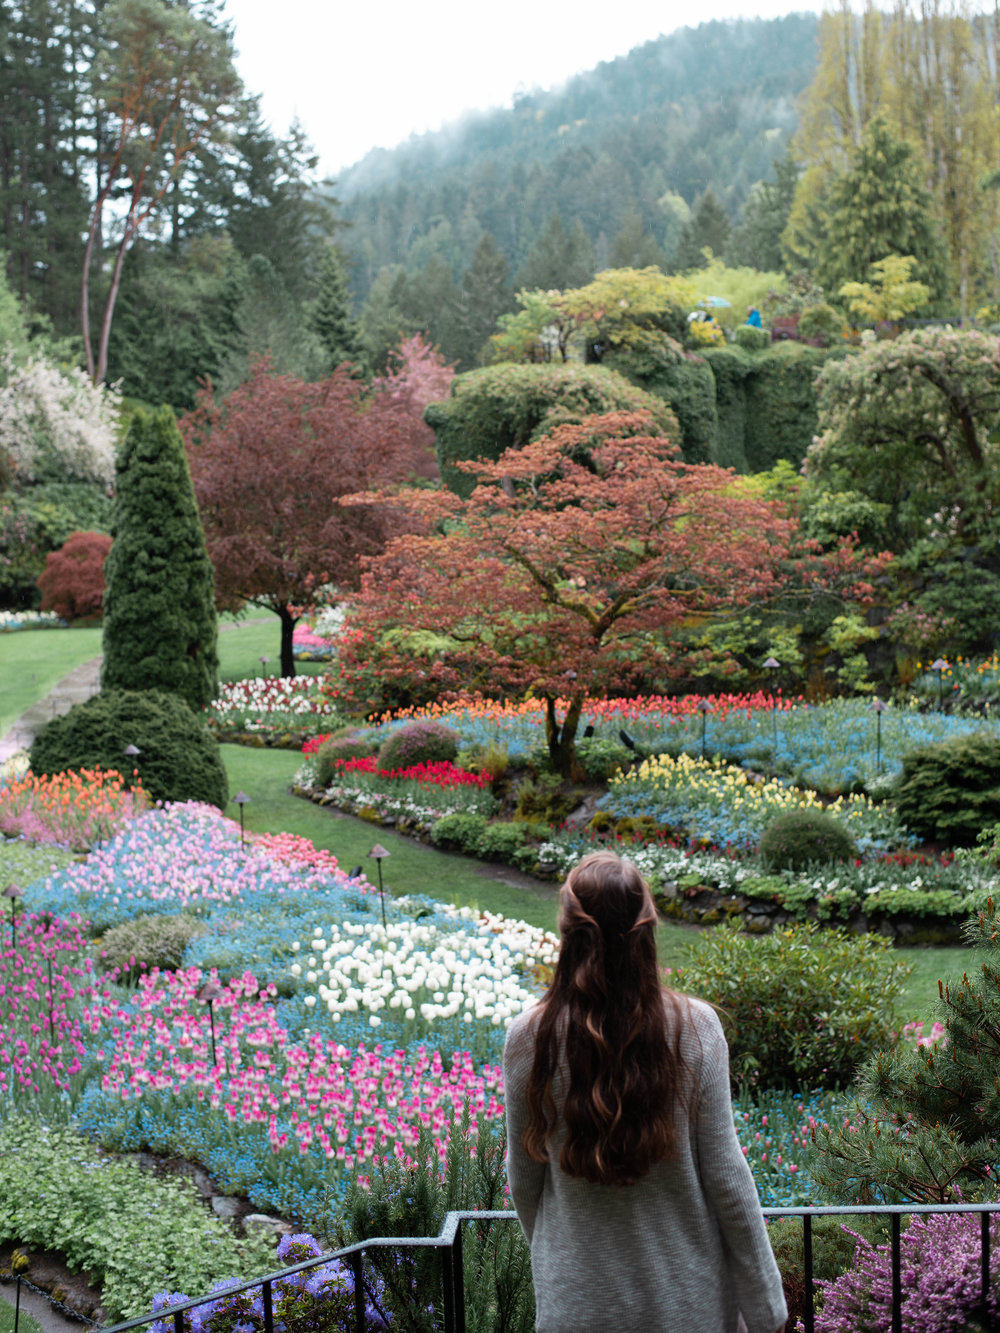 Touring The Butchart Gardens in Victoria was a highlight of our trip